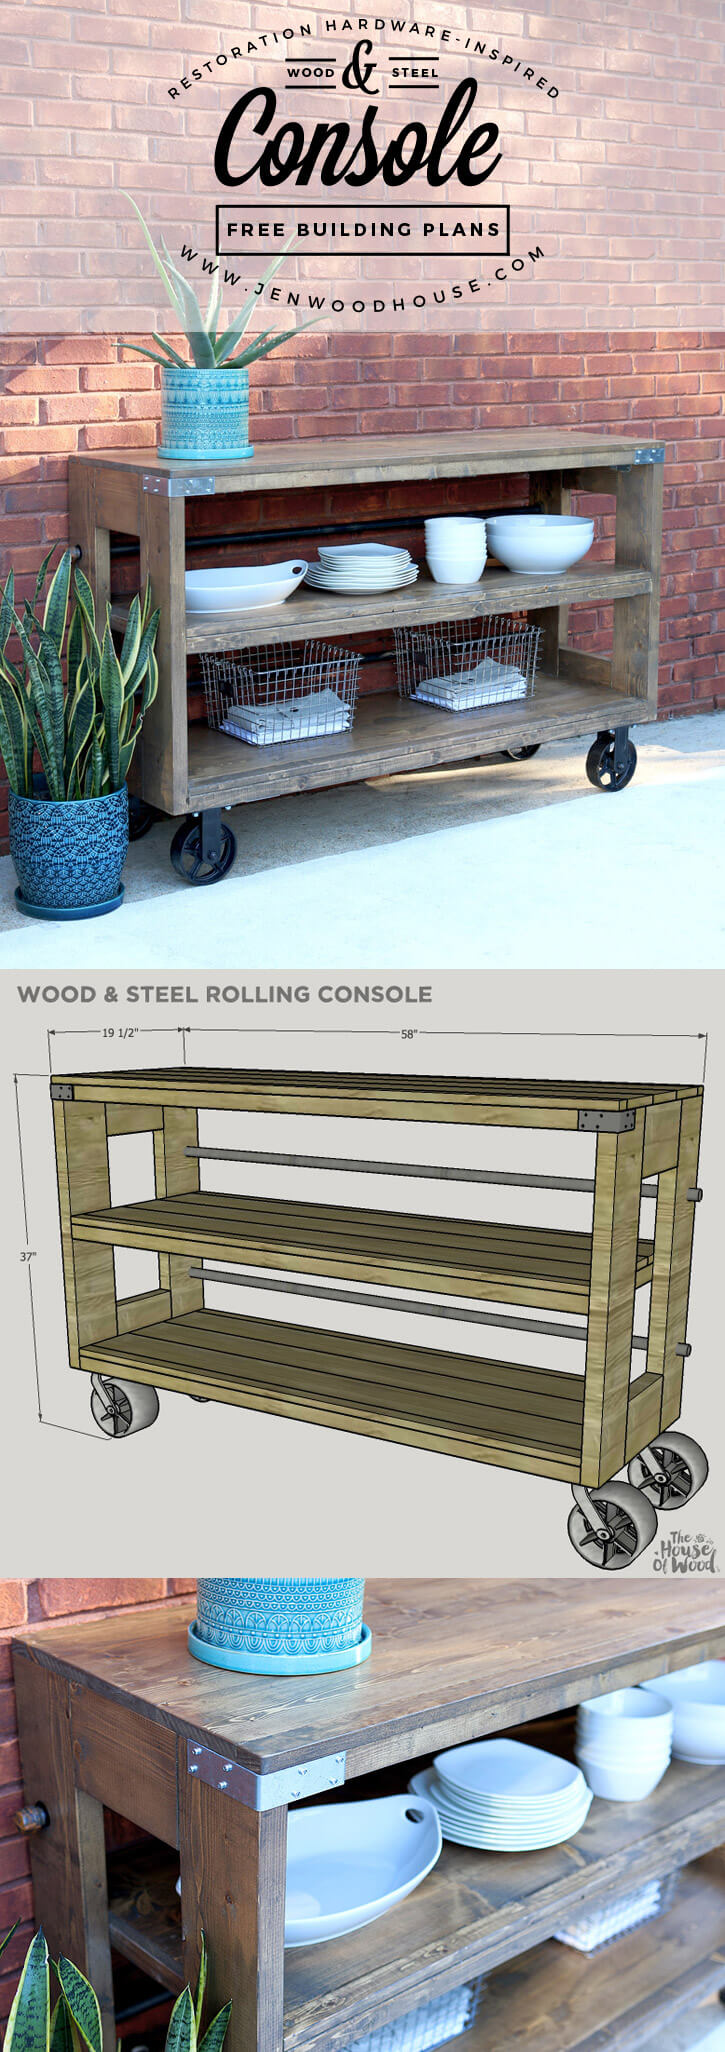 Rustic Wood and Steel Rolling Console